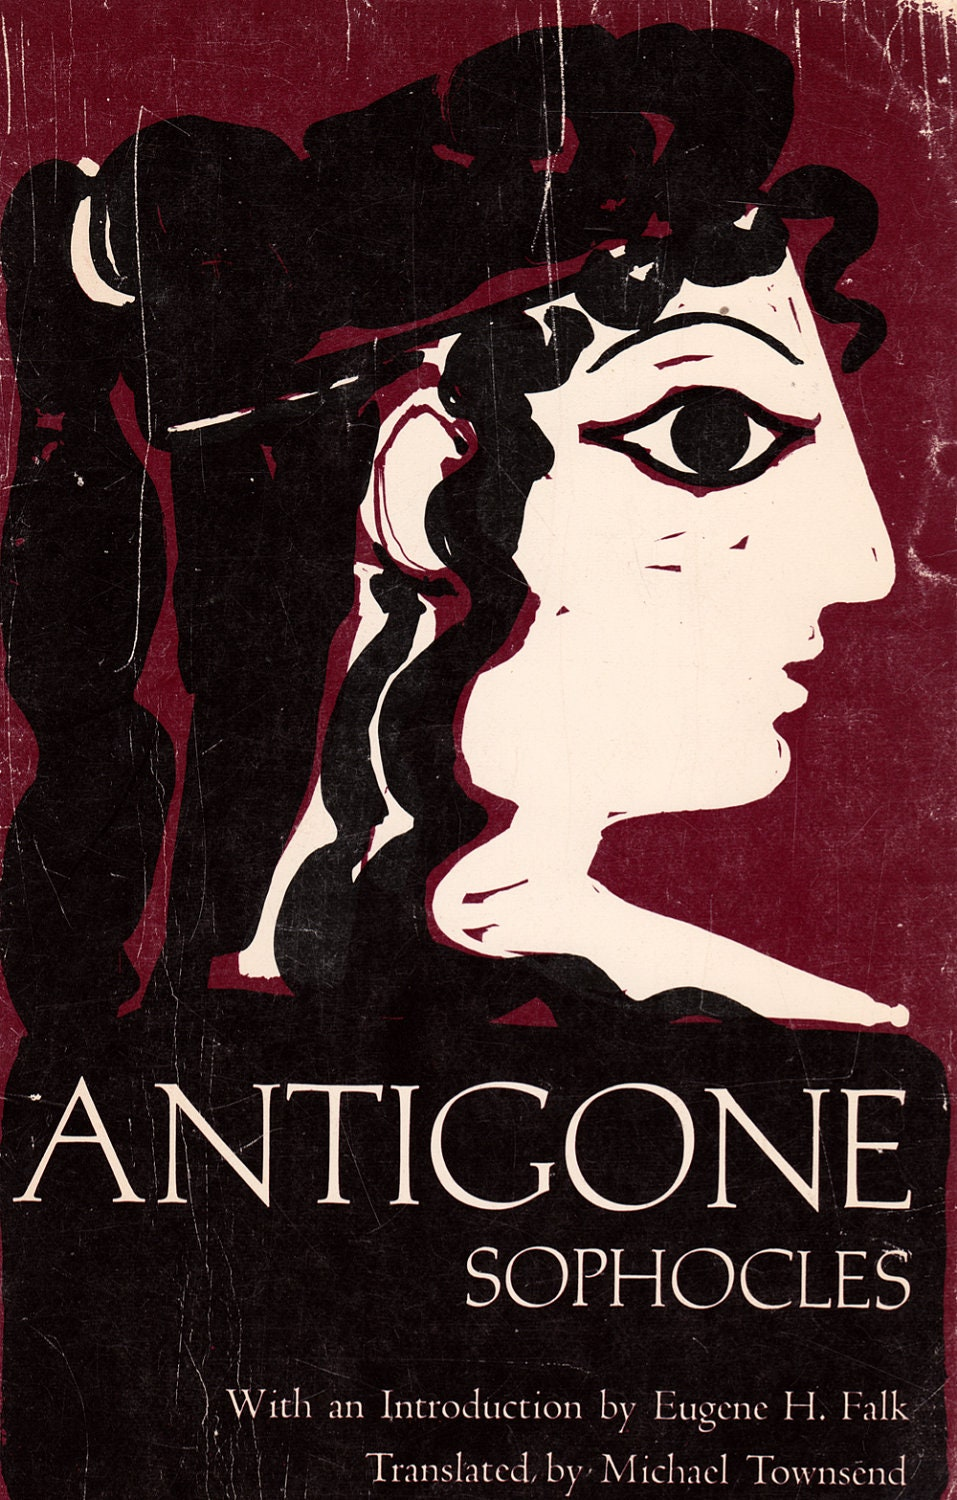 A production of sophocles antigone essay